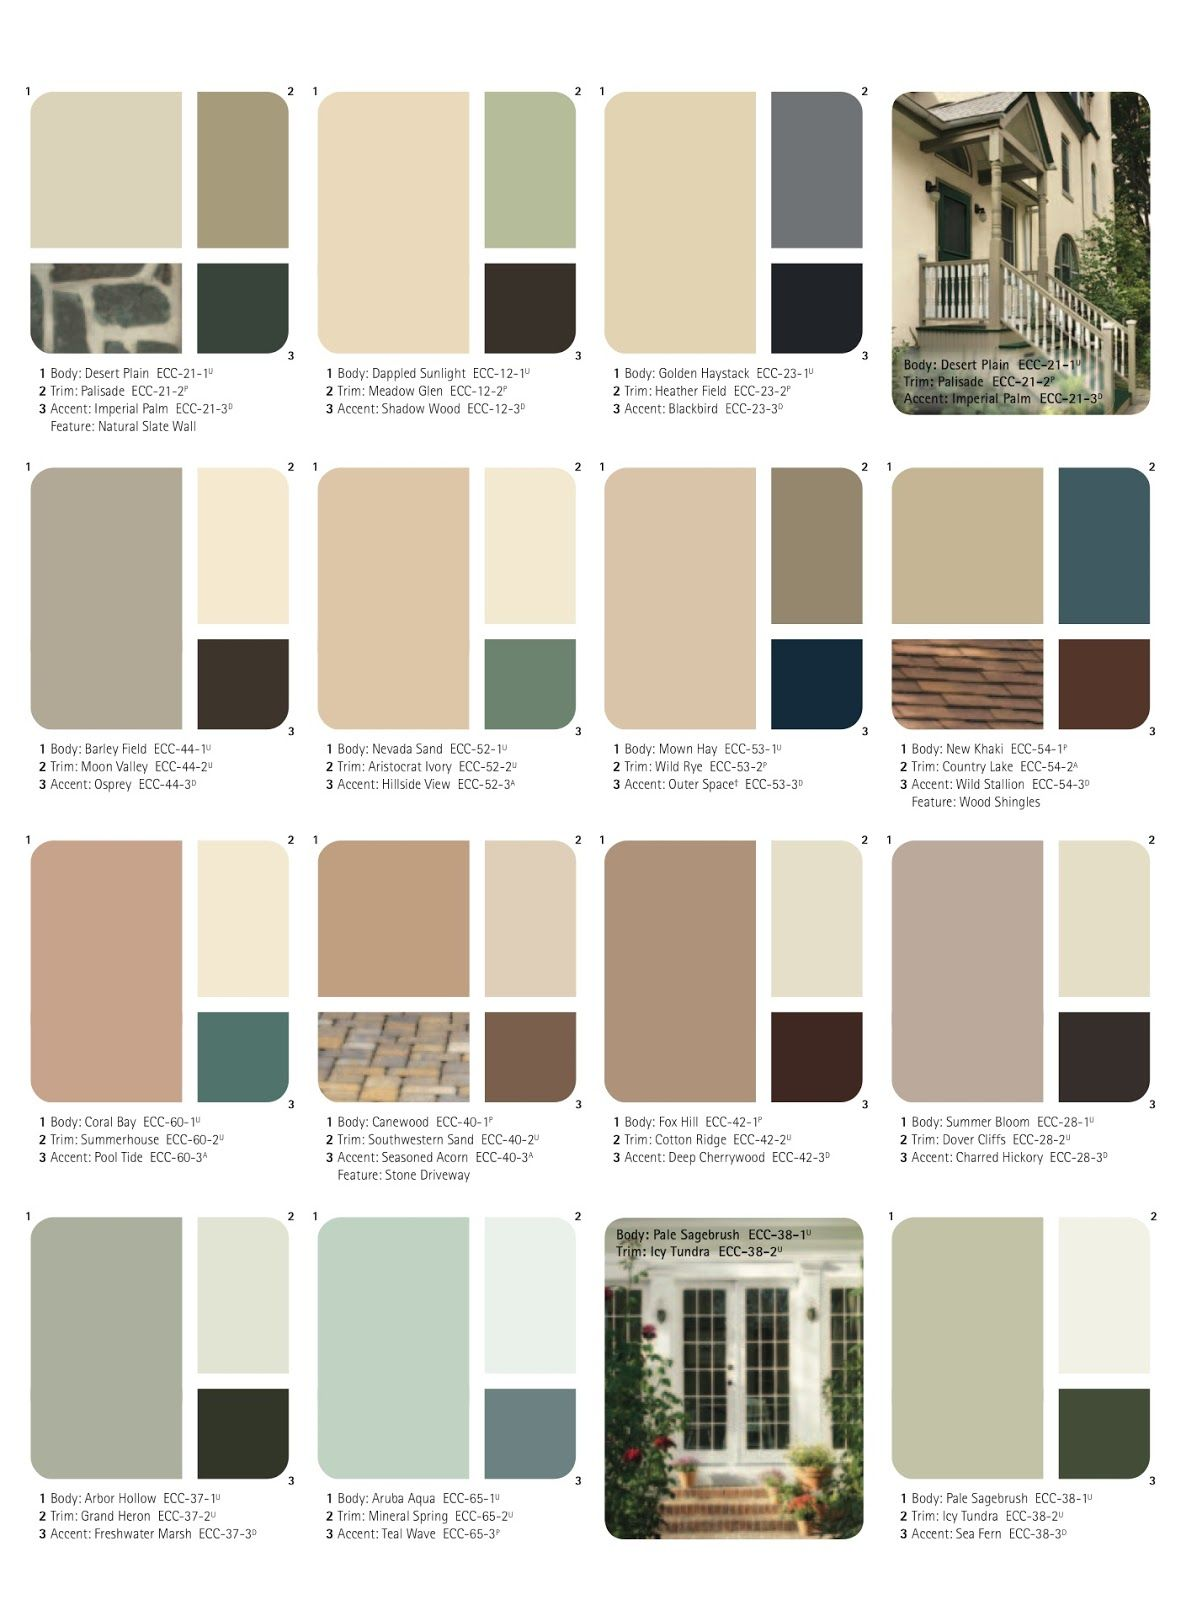 Exterior paint schemes on pinterest exterior house - House paint colors exterior photos ...